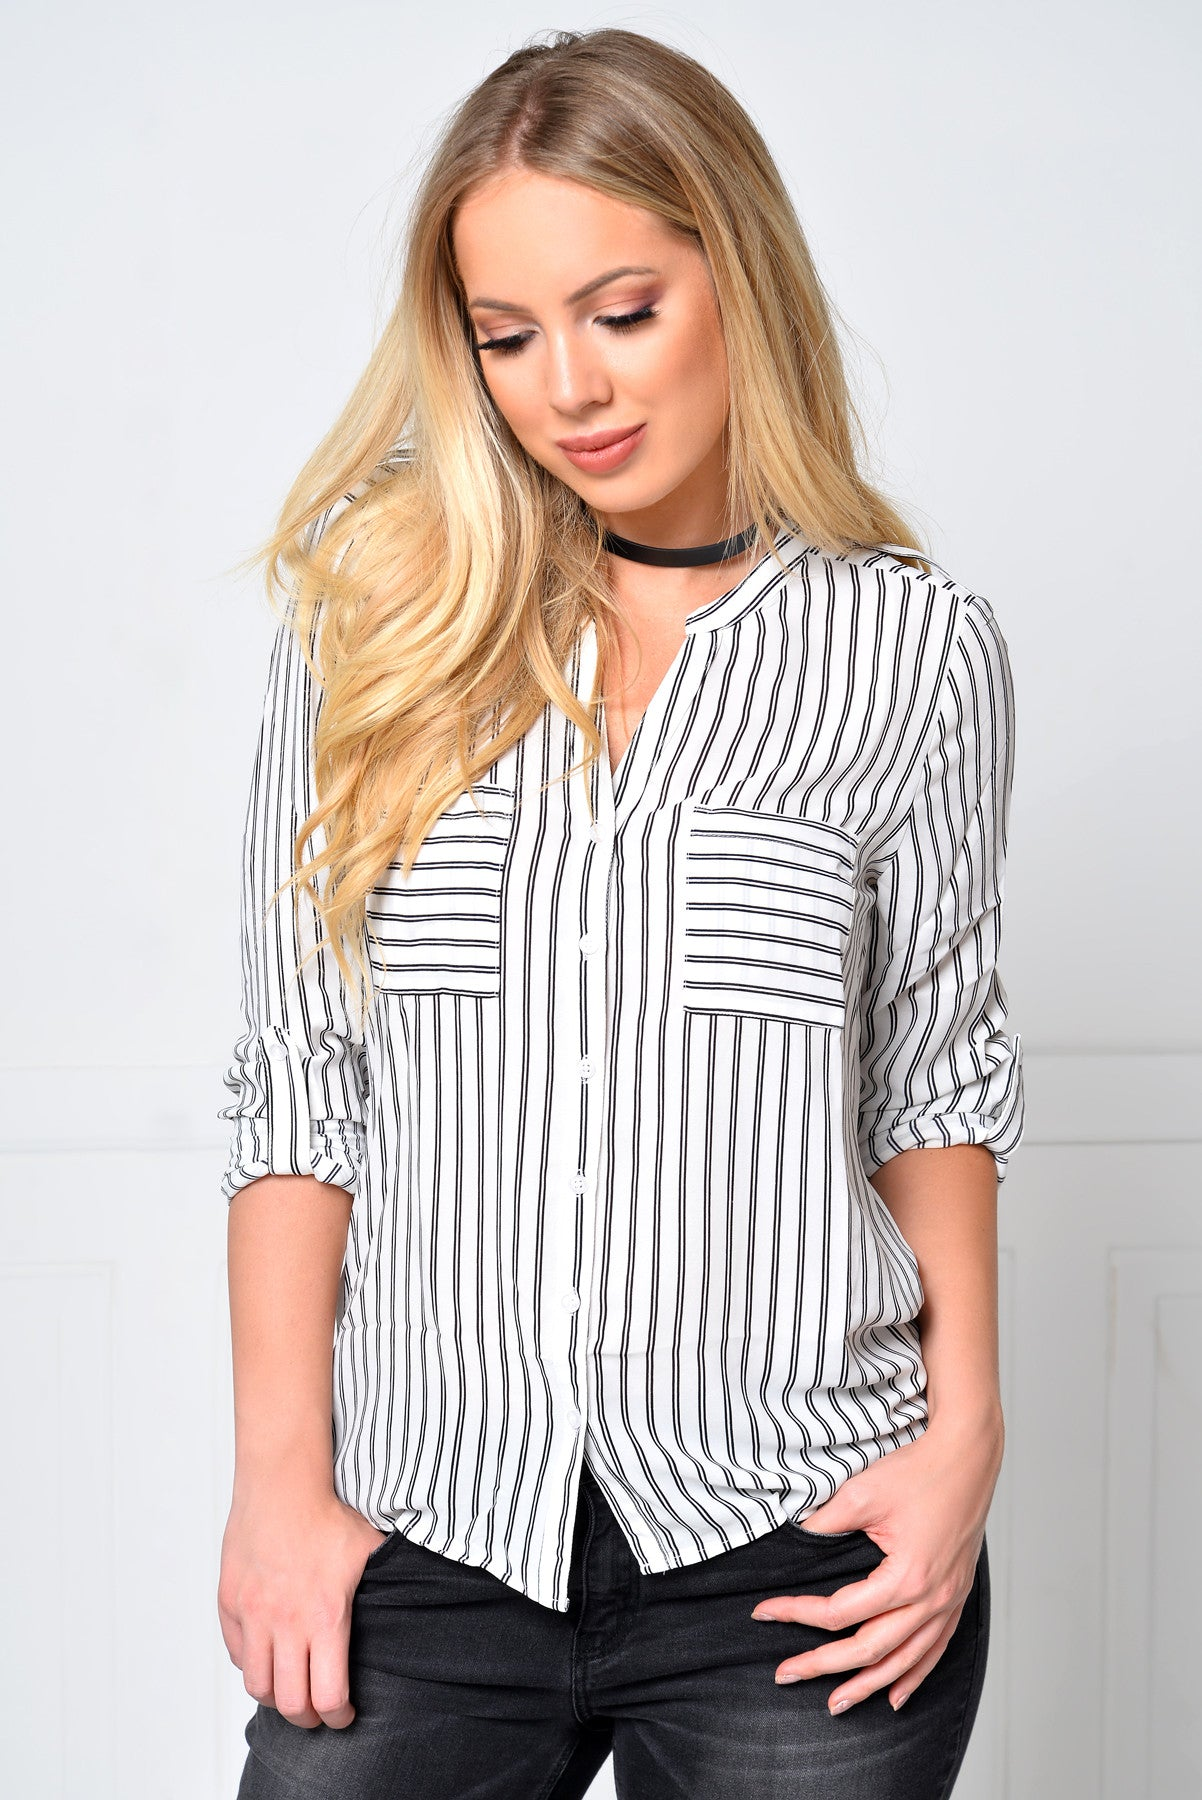 Ready To Go Striped Blouse - Fashion Effect Store  - 1